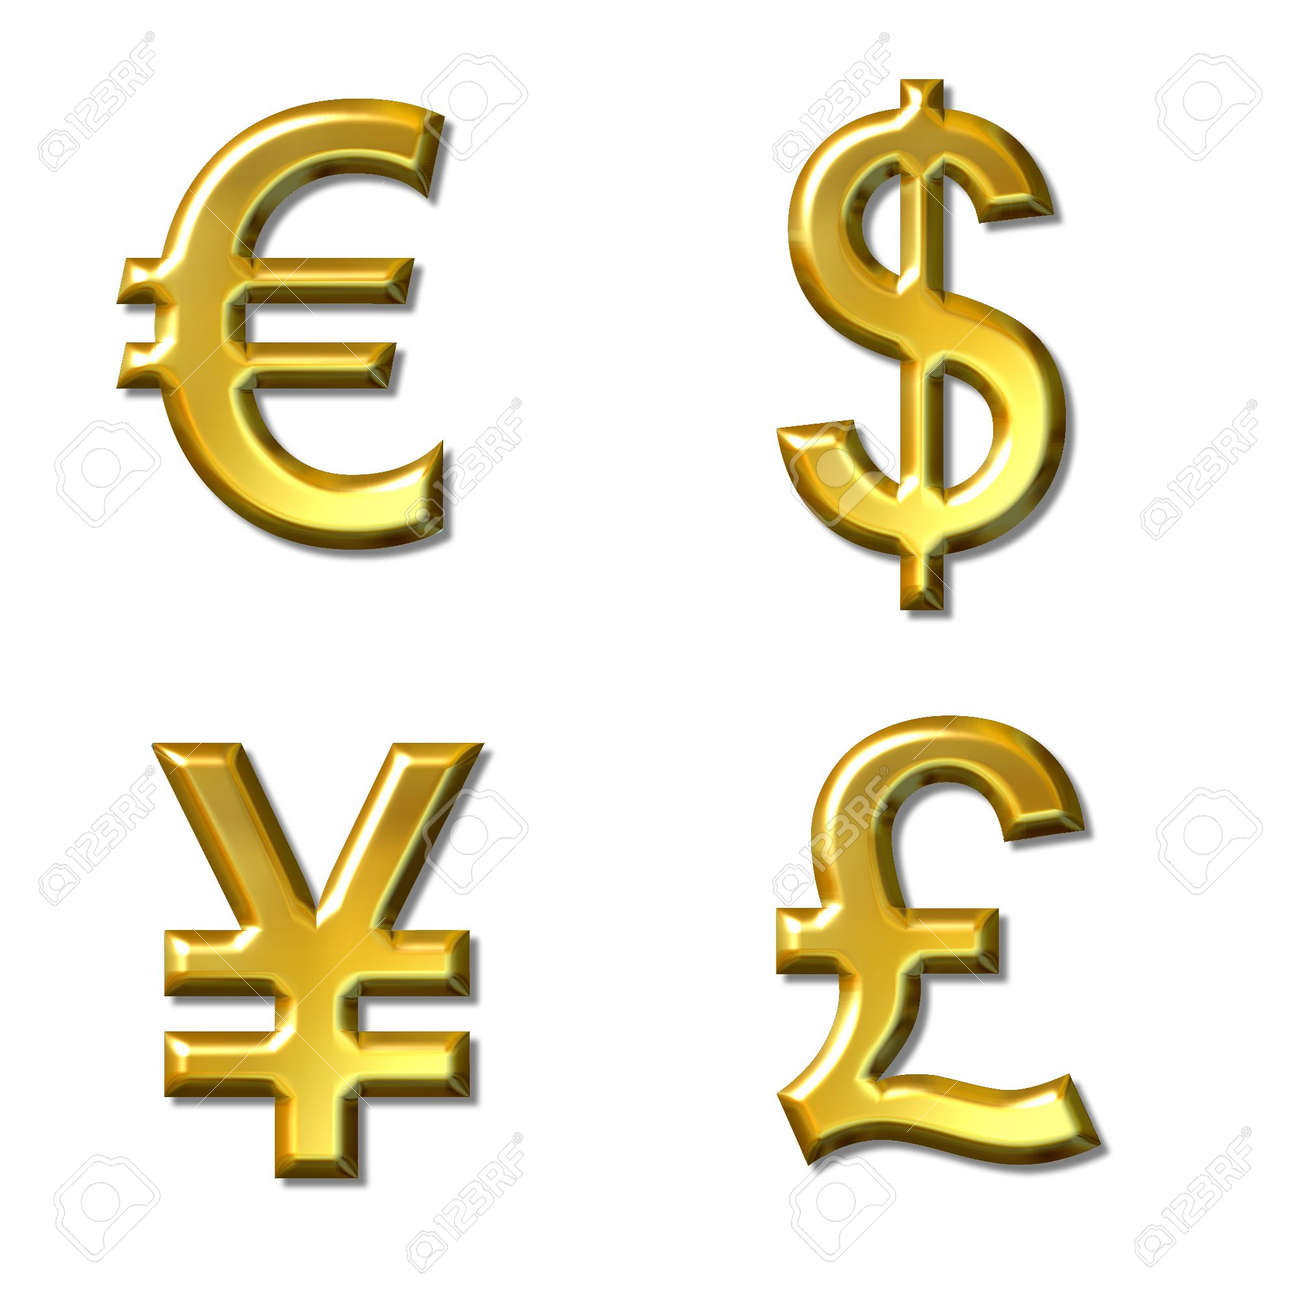 Euro dollar yen pound symbols with gold bevel 4 in 1 stock euro dollar yen pound symbols with gold bevel 4 in 1 stock biocorpaavc Image collections